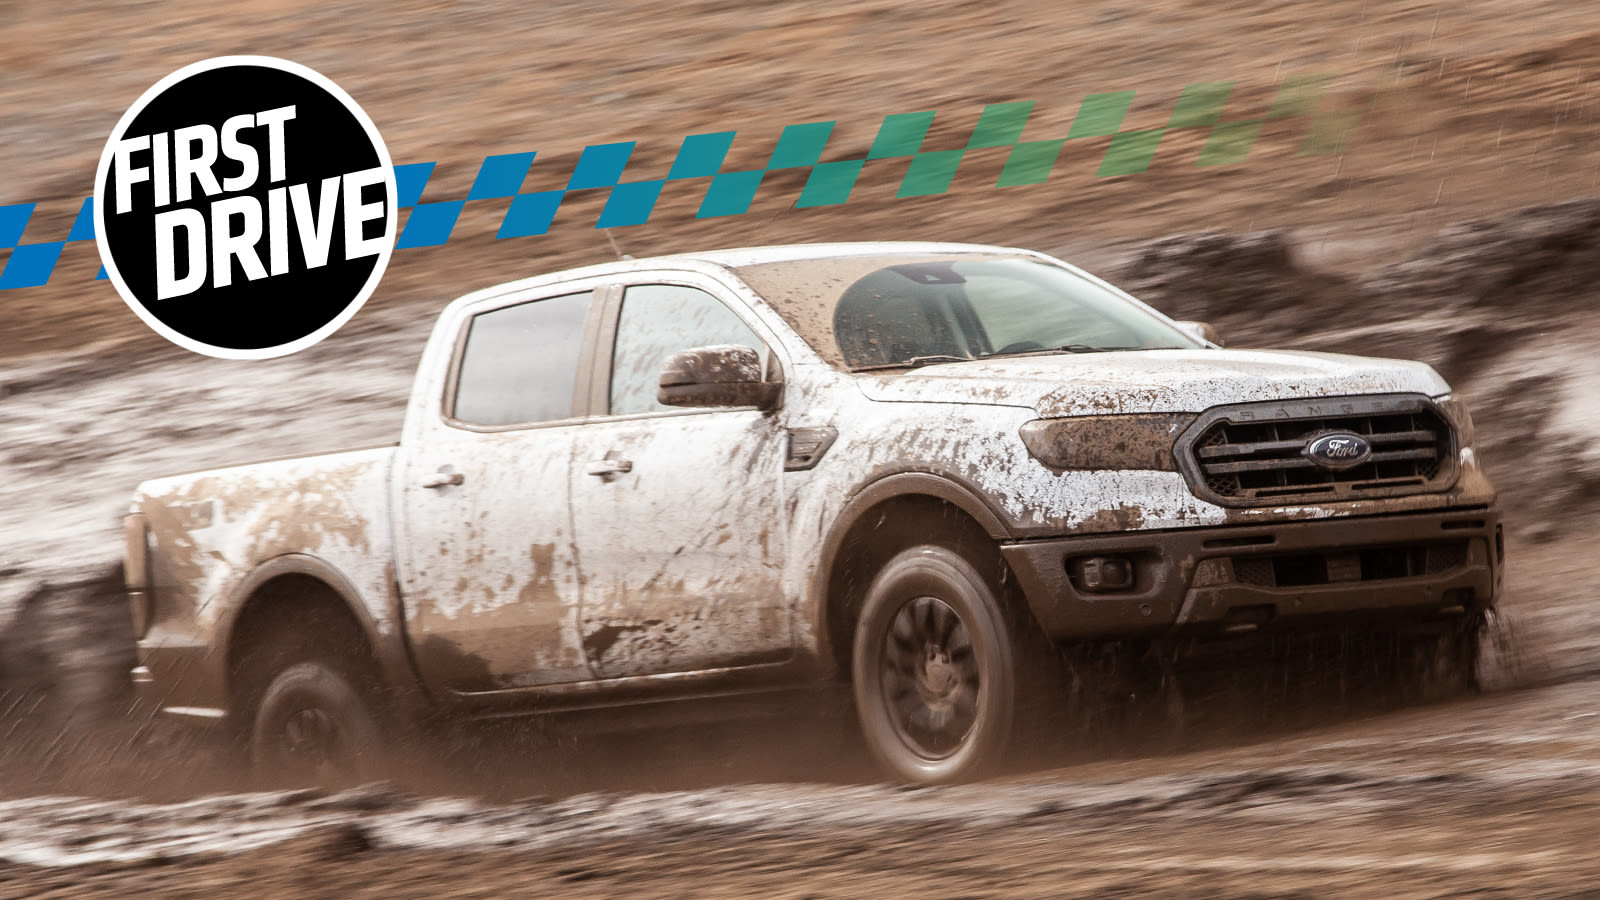 2019-ford-ranger-first-drive.jpg